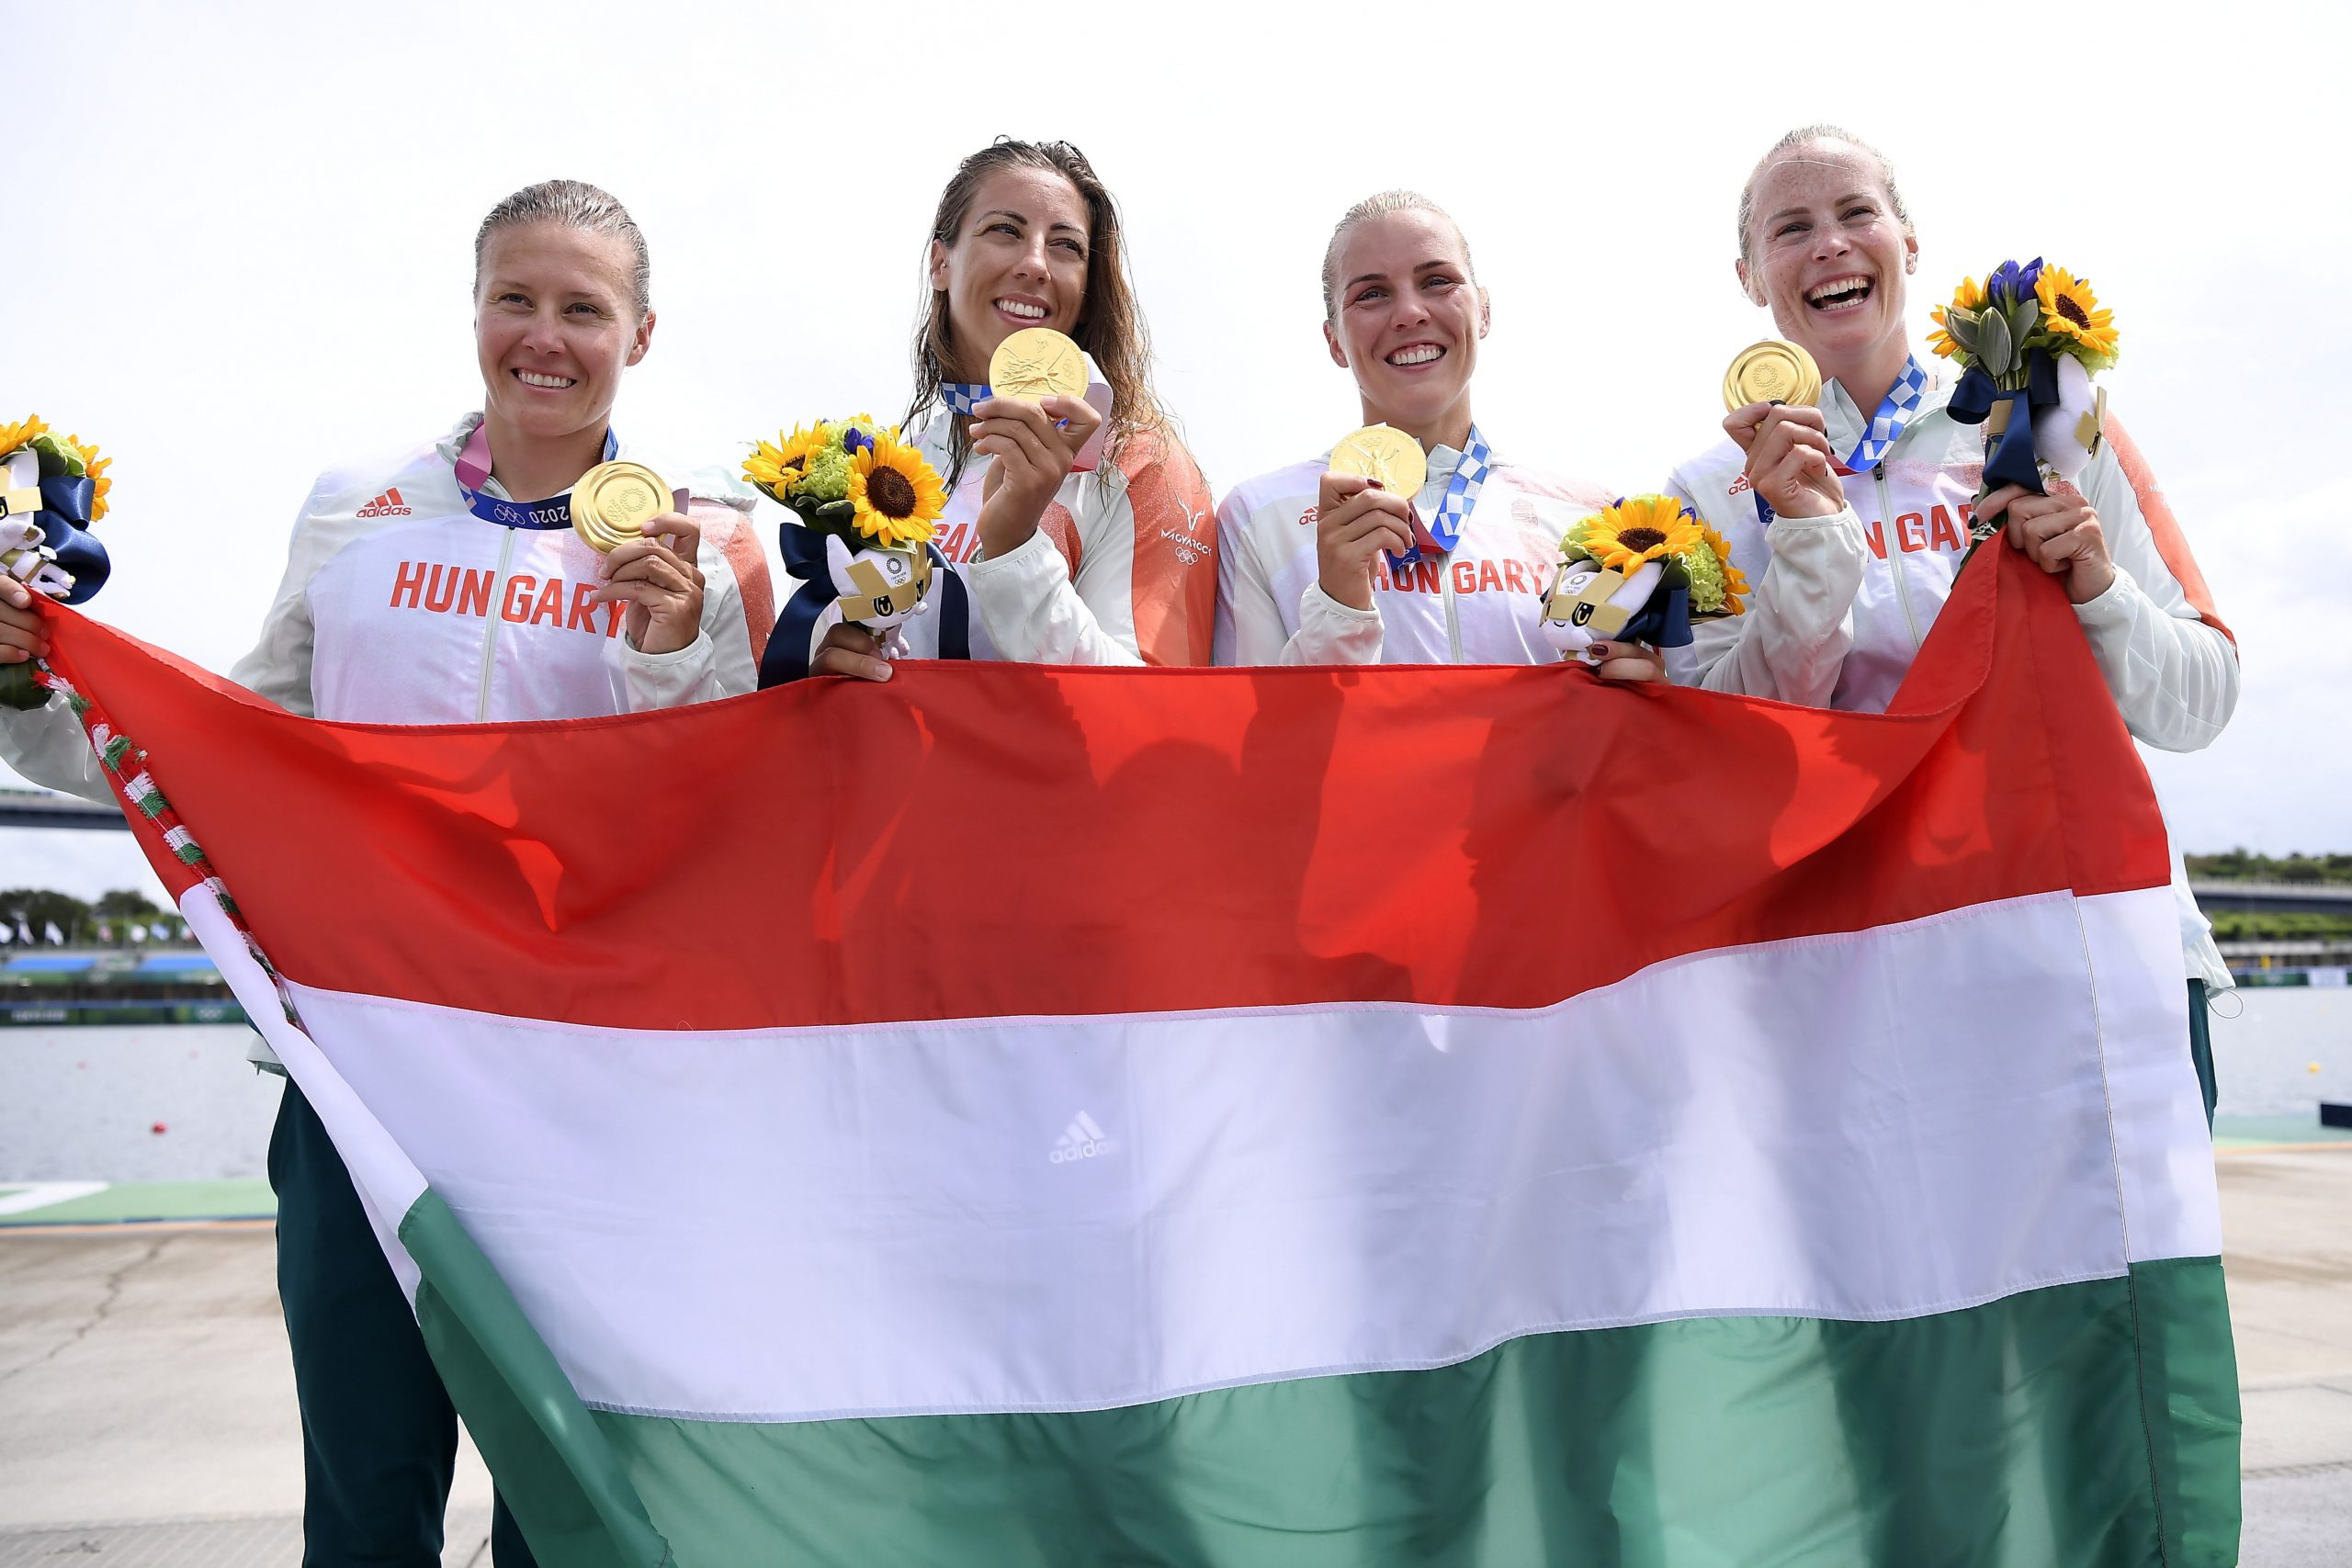 Tokyo 2020 – Hungary's Greatest Olympic Success Since 1996